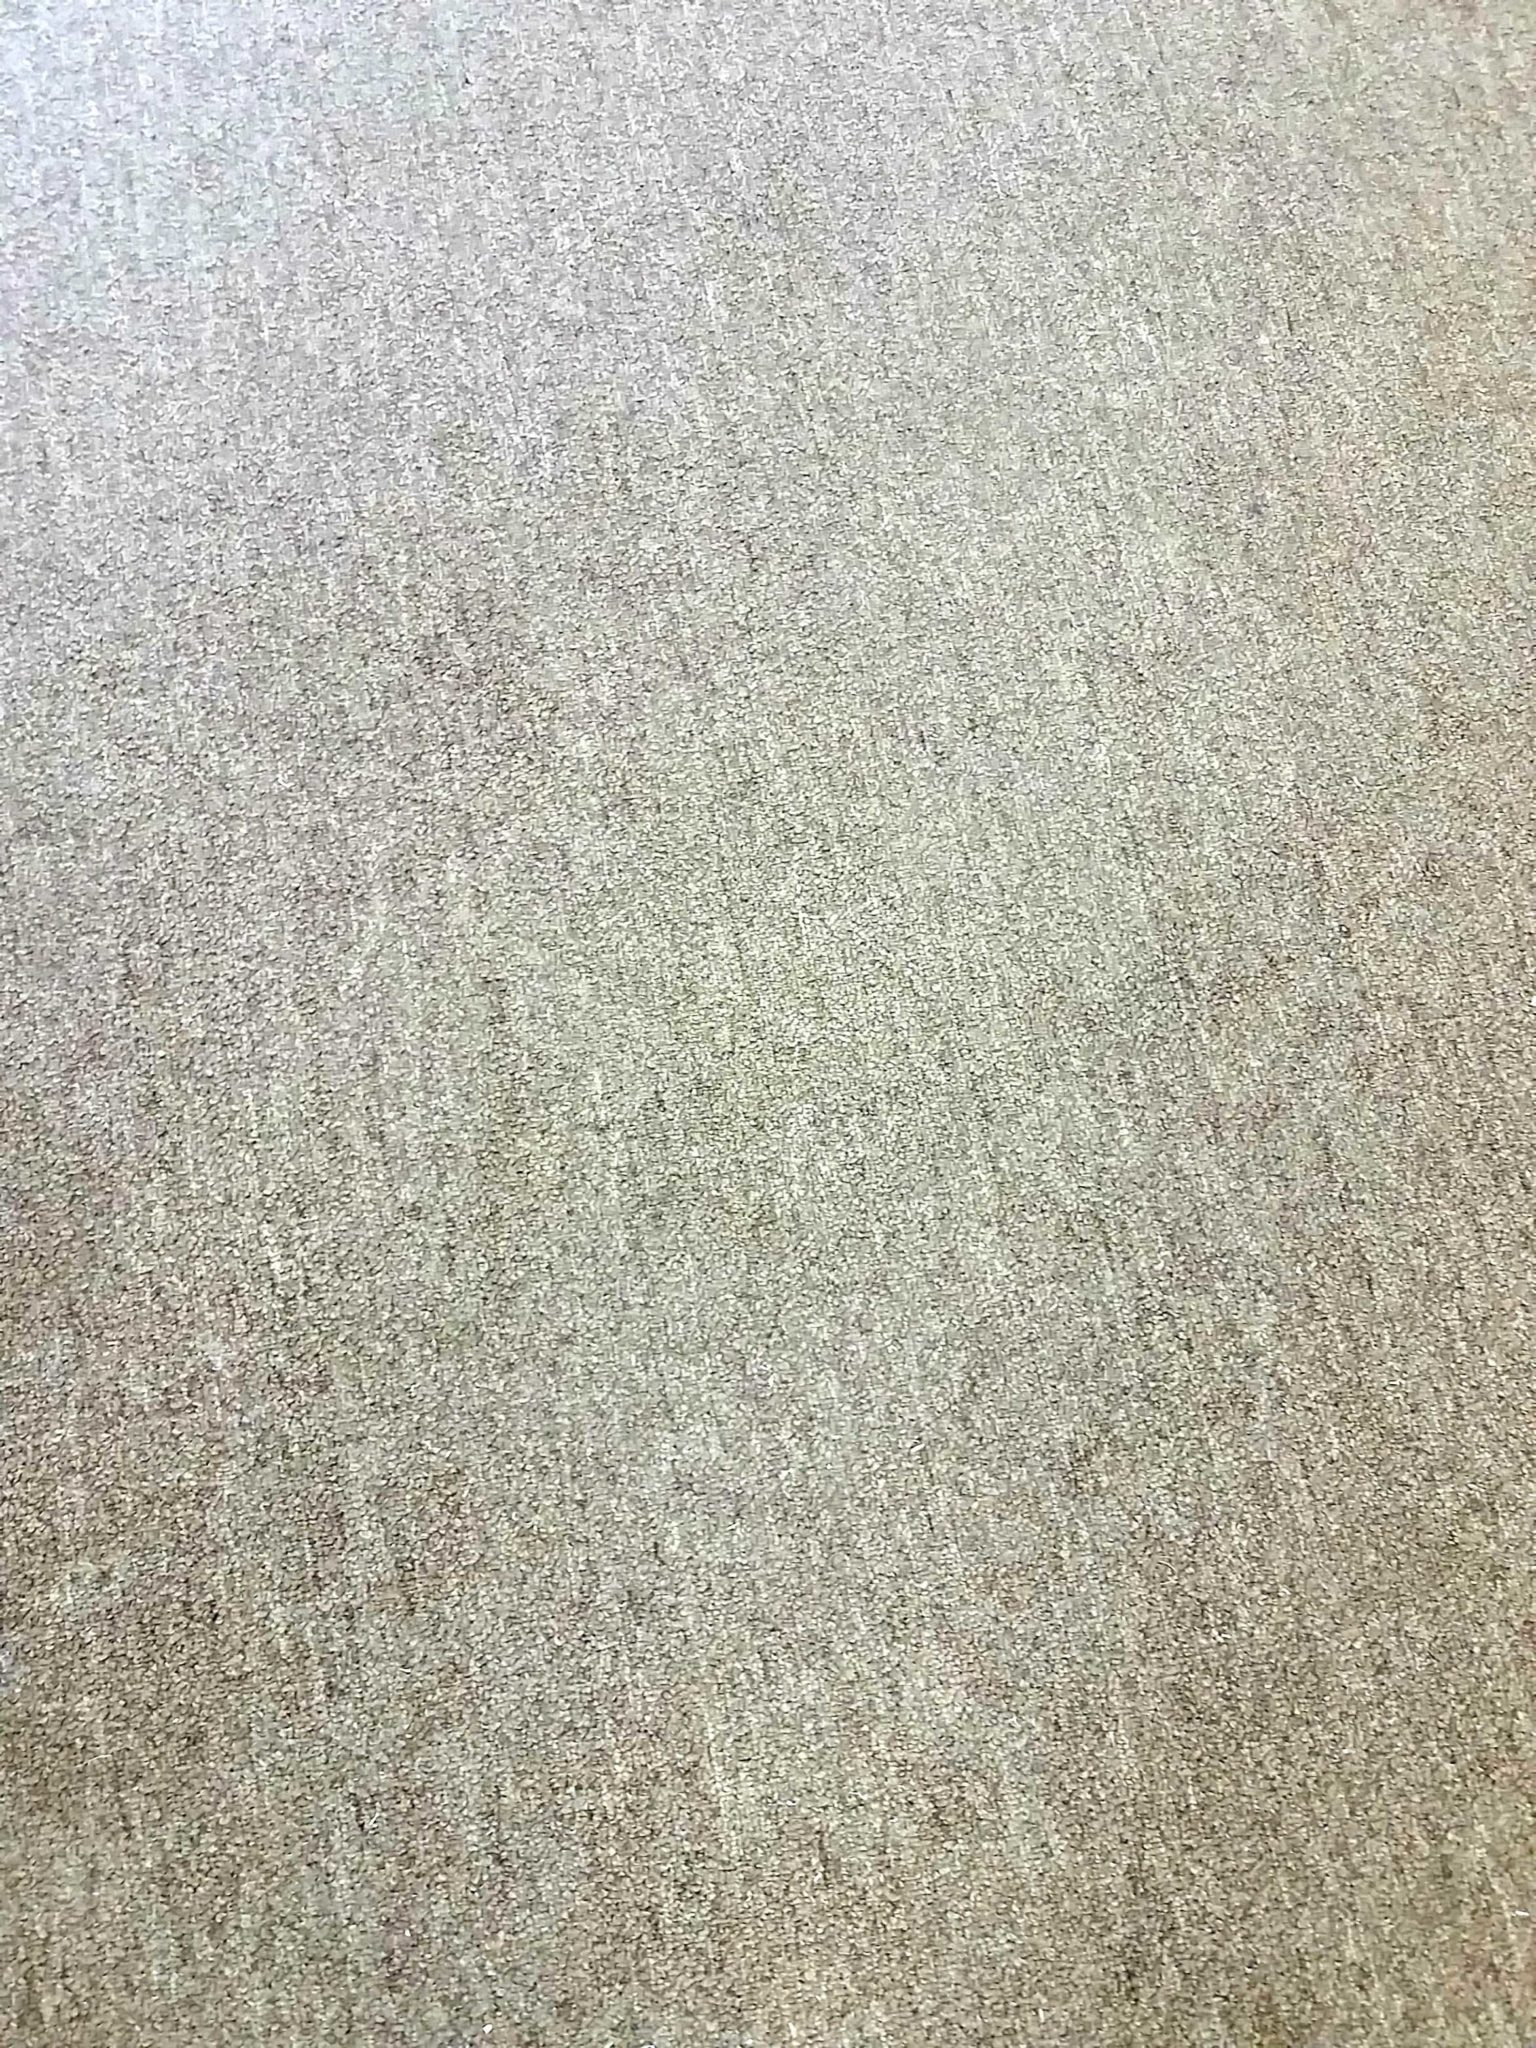 how to remove stains from carpet the easy way diva of diy. Black Bedroom Furniture Sets. Home Design Ideas